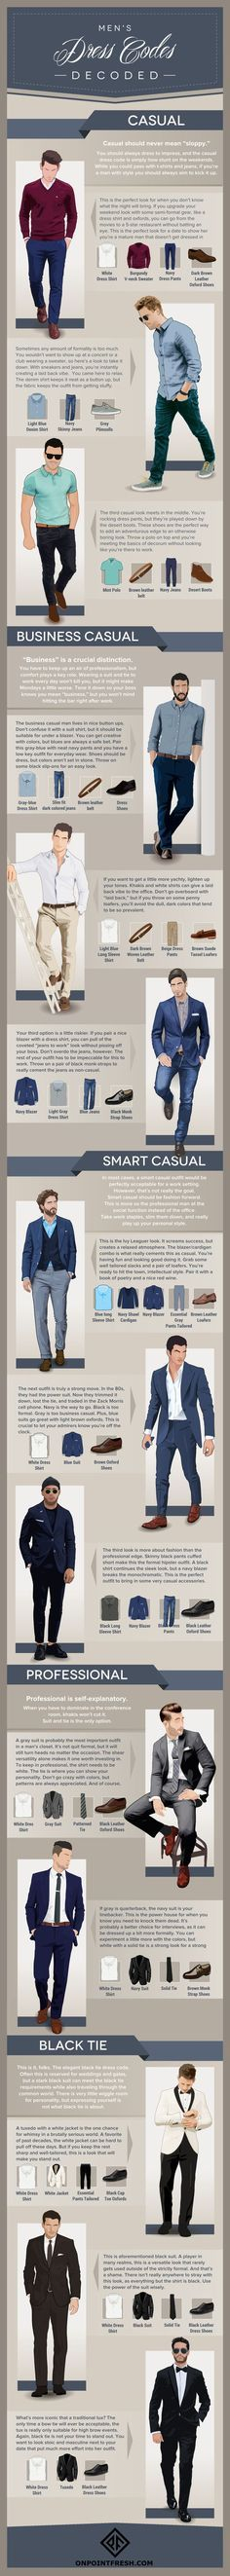 Men's Dress Codes Decoded [Infographic]